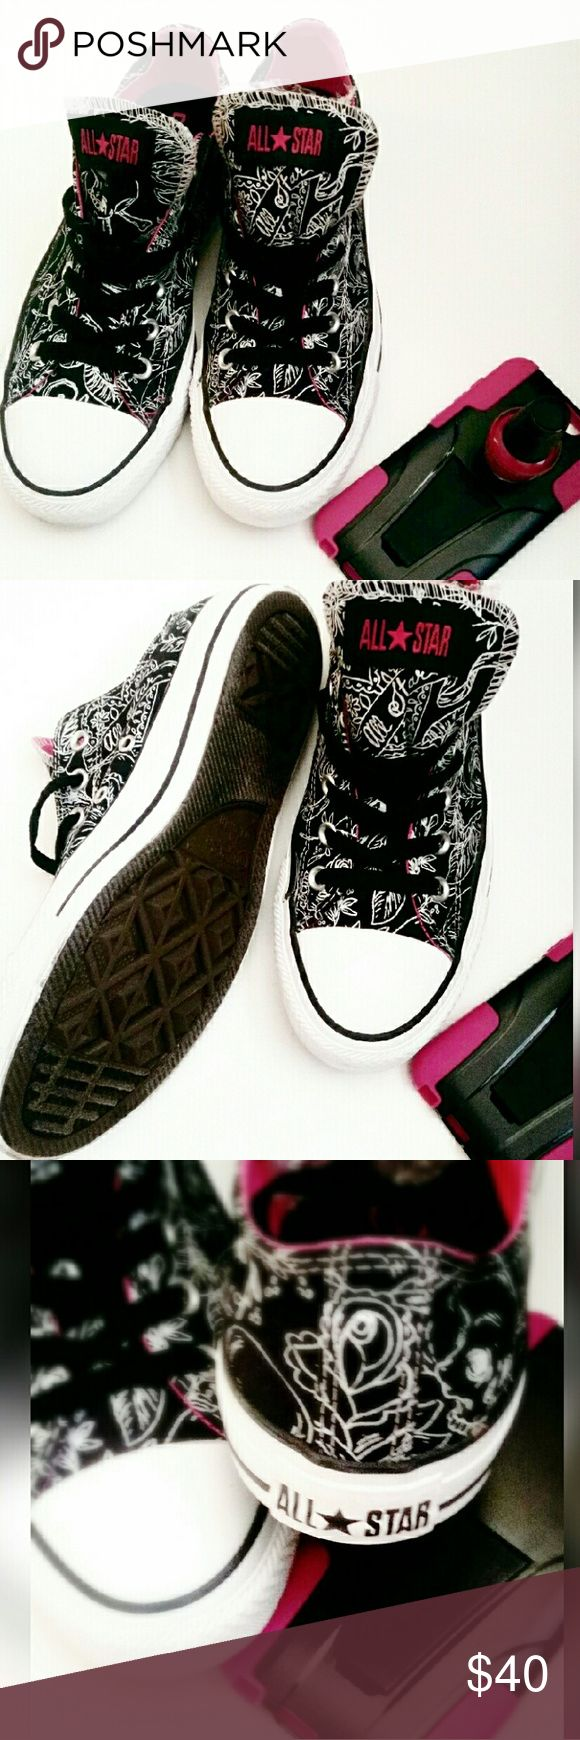 Walking dead converse shoes for sale - Nwot Converse The Walking Deadconverse Shoesshoes